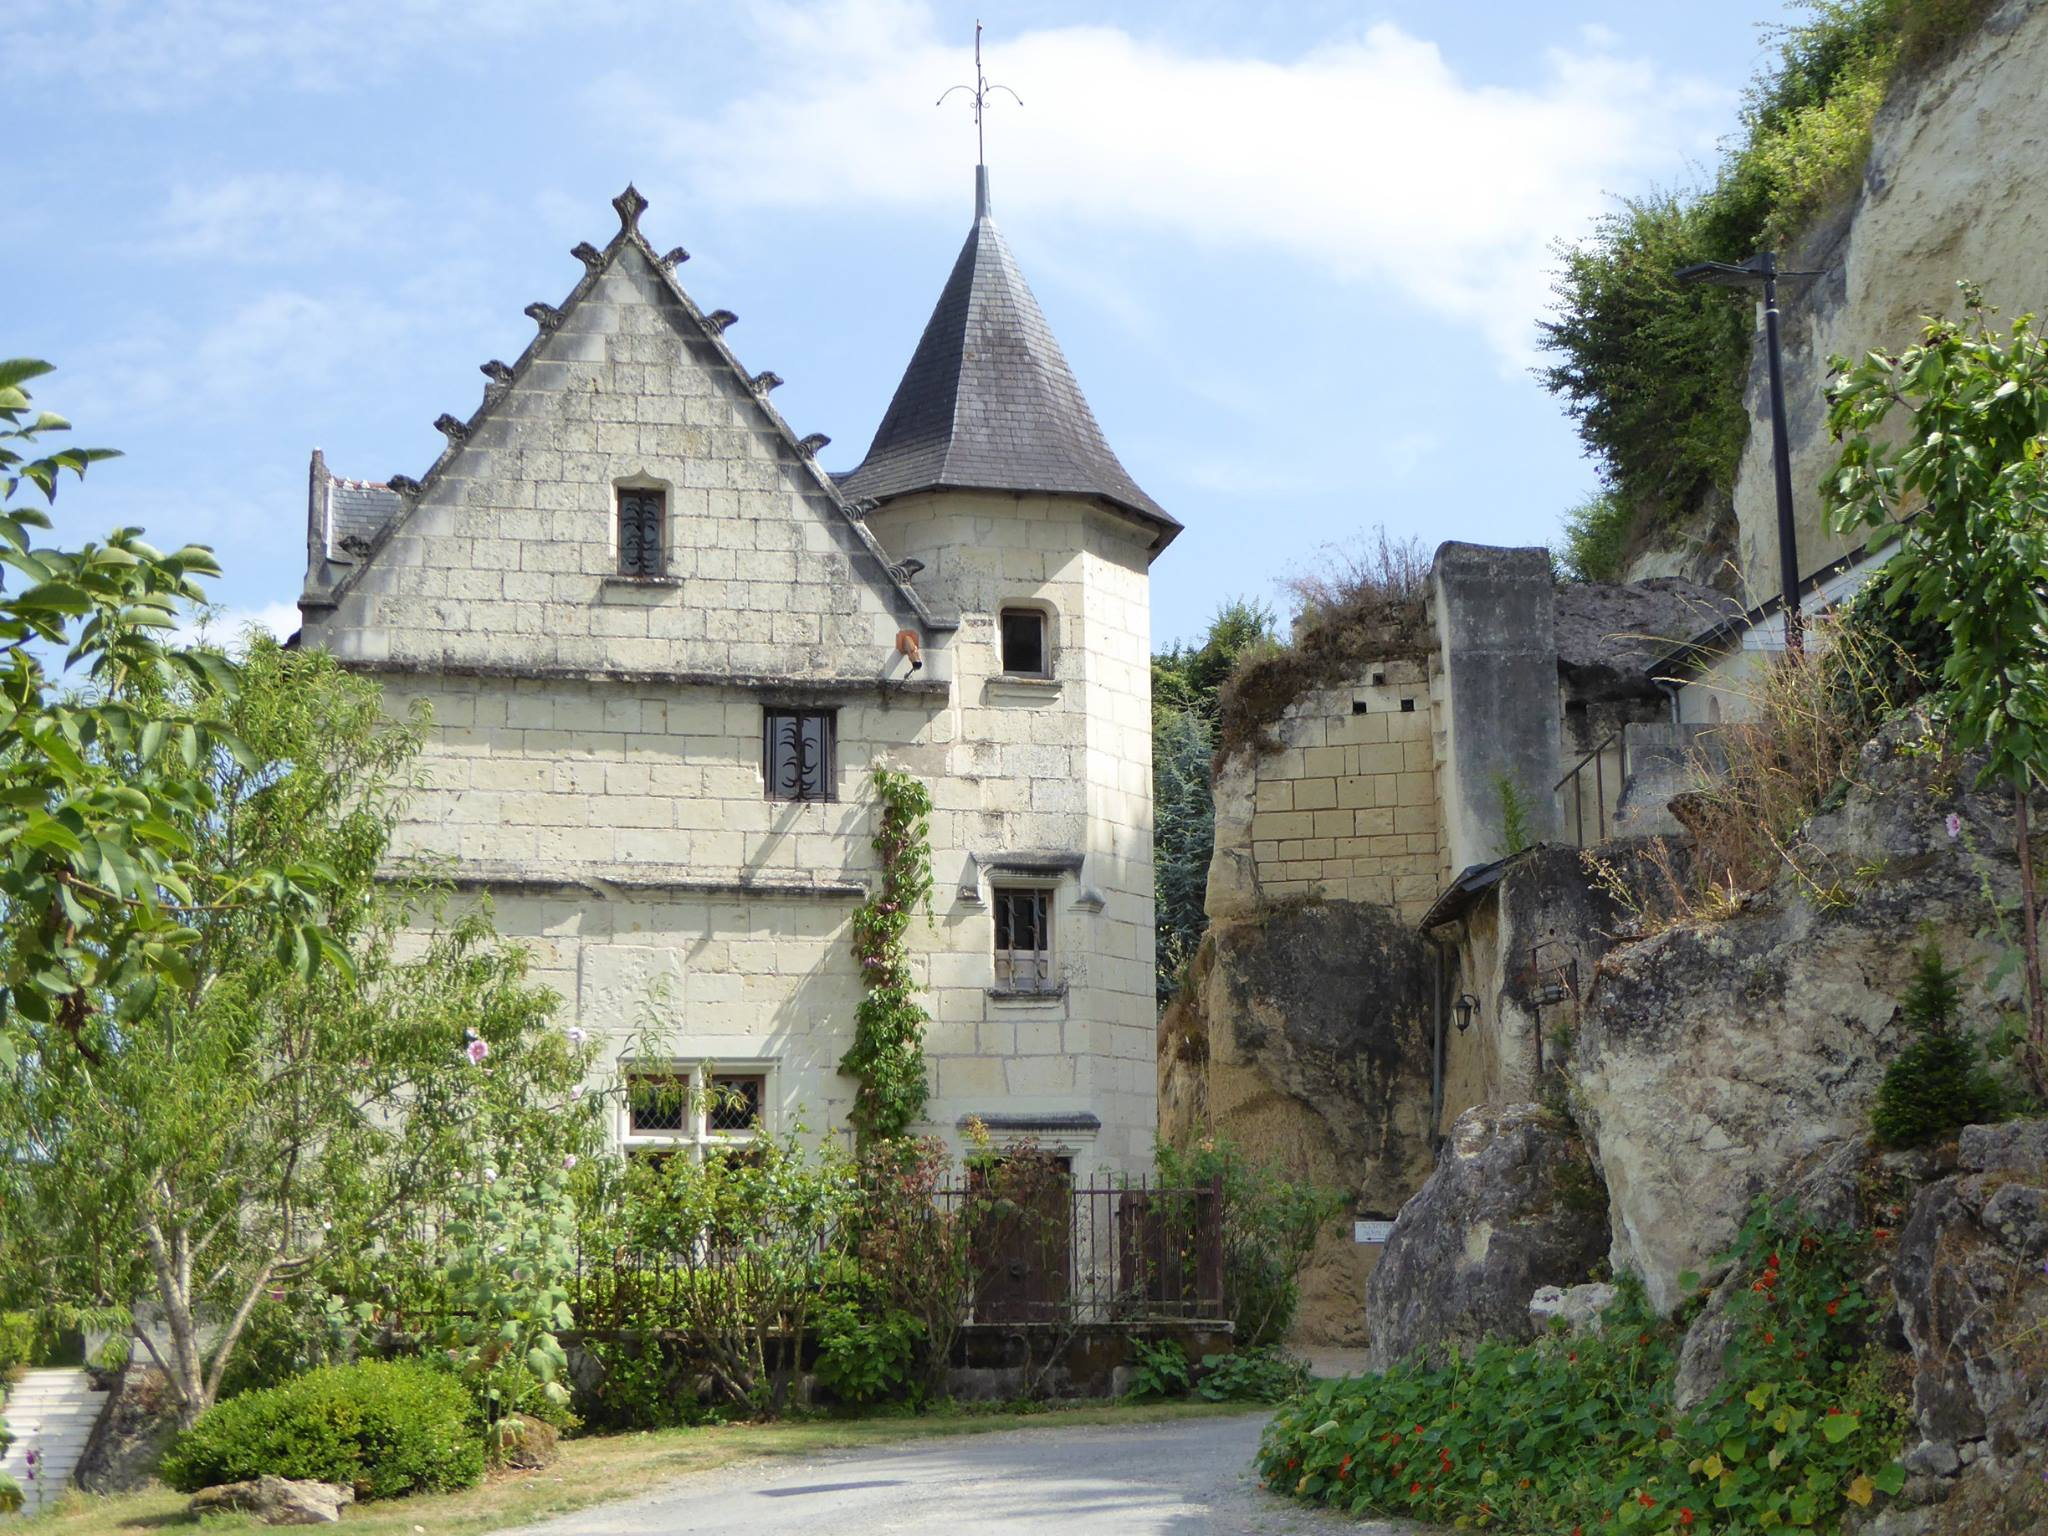 A chateau hotel - our trail winds right through the grounds